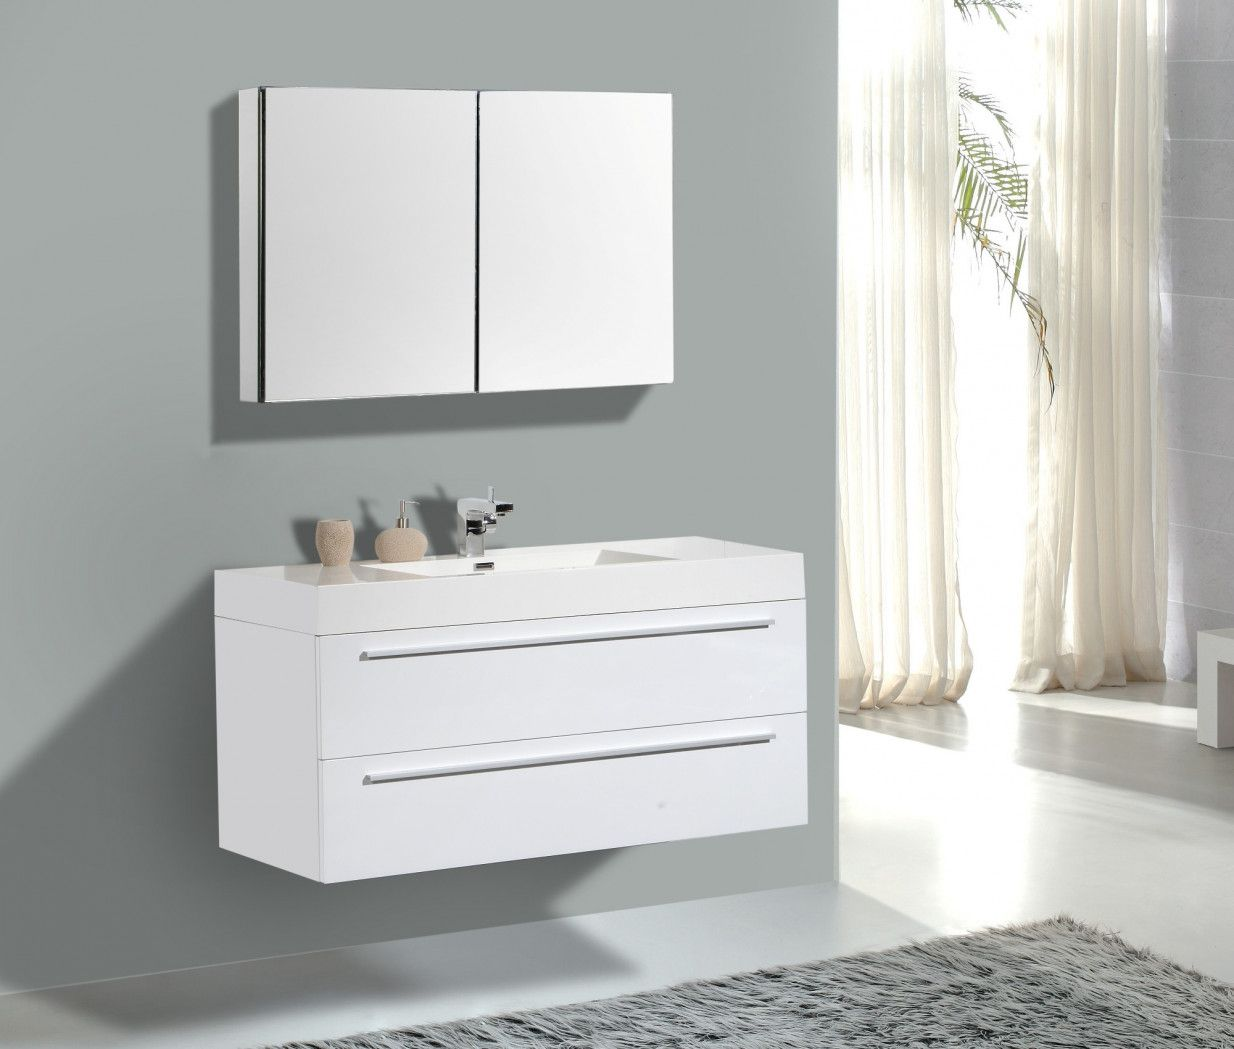 50+ wholesale Bathroom Cabinets - Best Interior Paint Brands Check ...